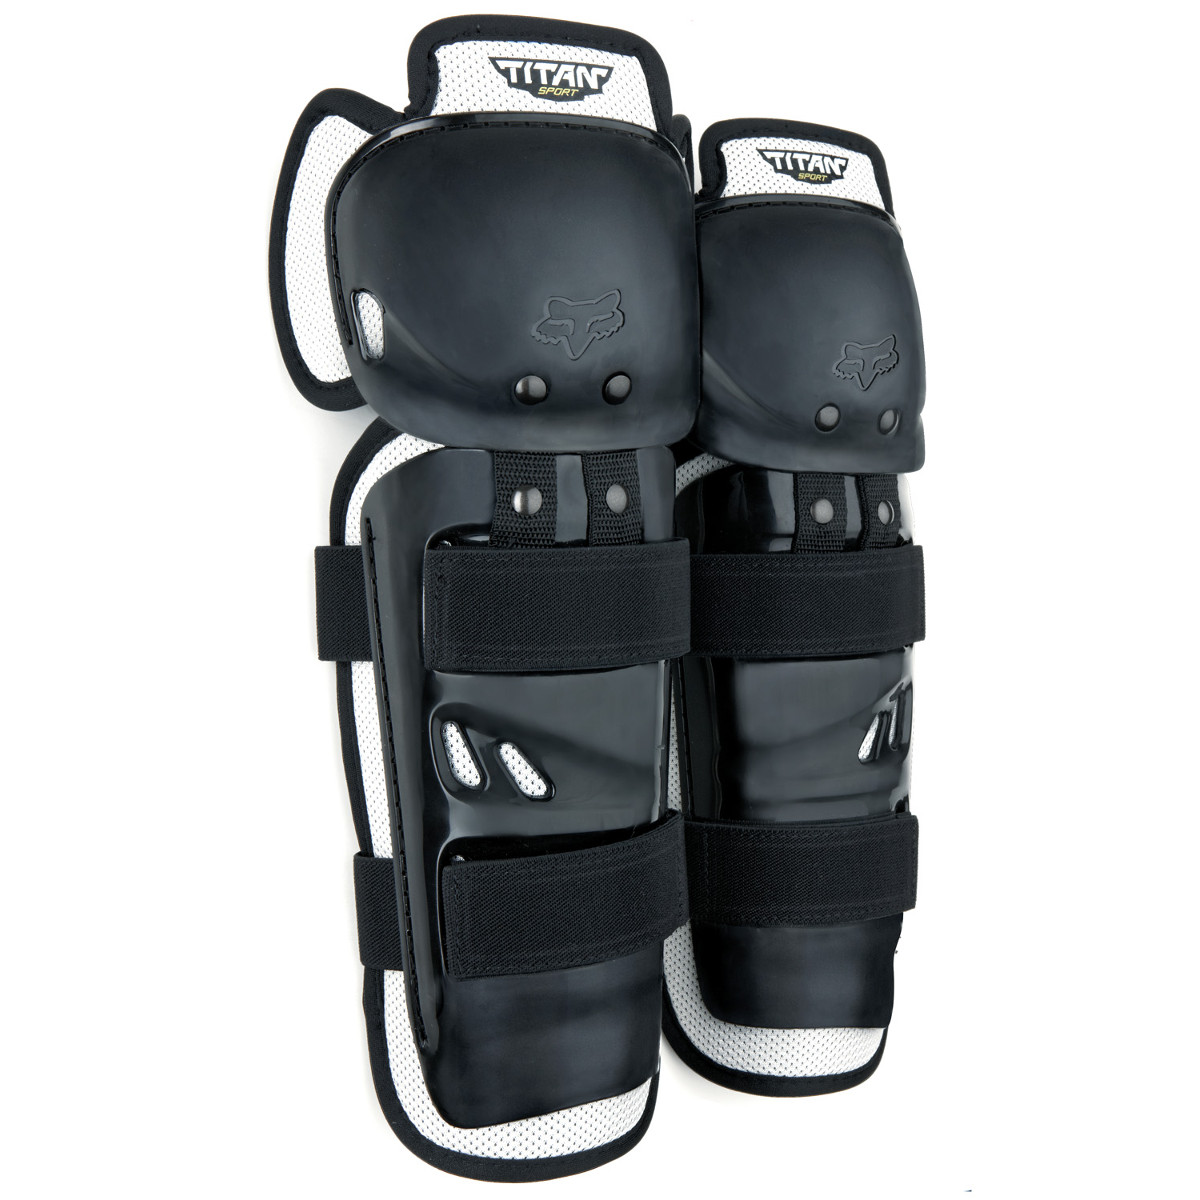 06194-001-OS fox racing titan sport knee guards protection kniebescherming Genouillère knieprotektor